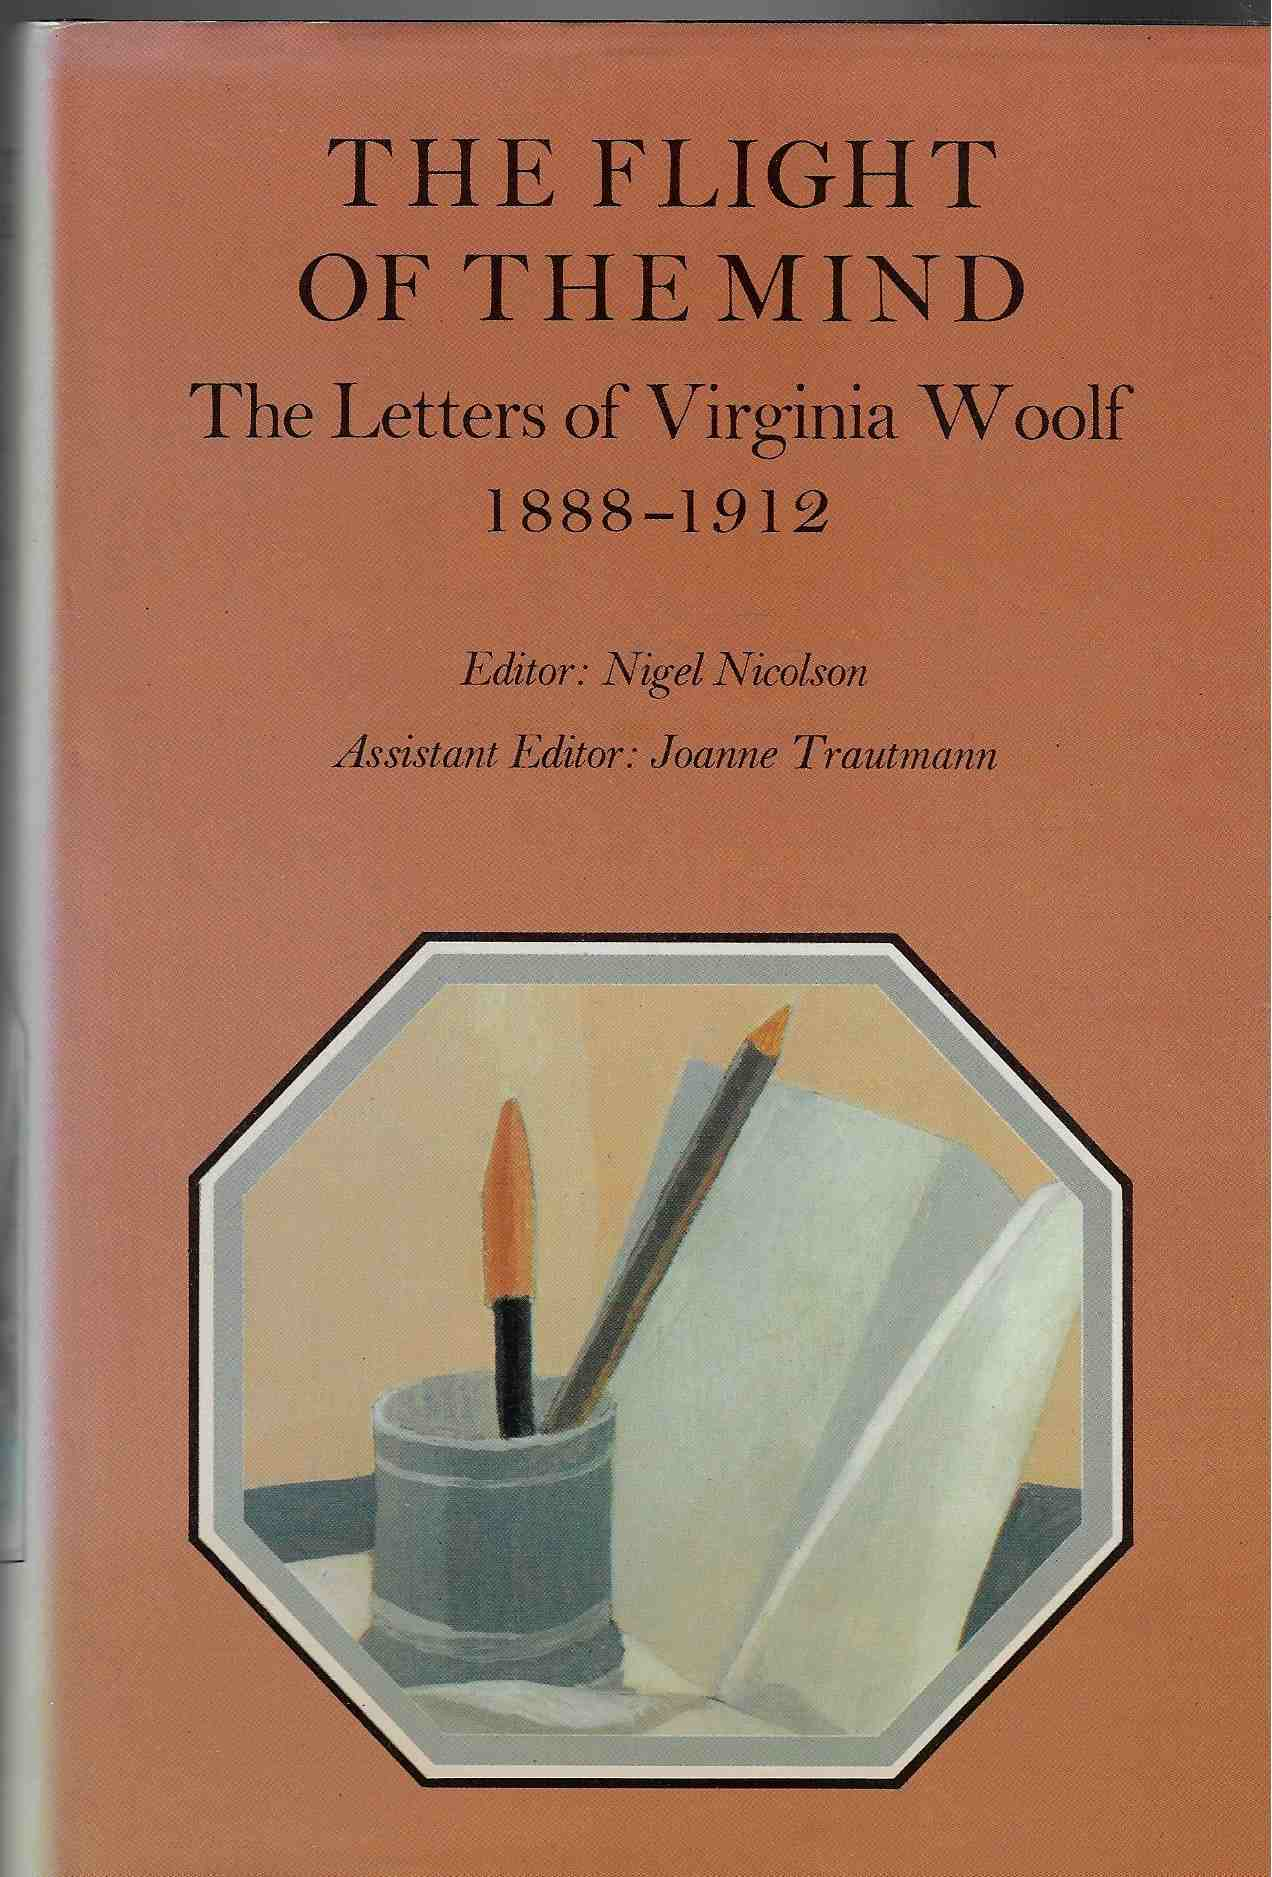 Image for The Letters of Virginia Woolf The Flight of the Mind, 1888-1912 V. 1